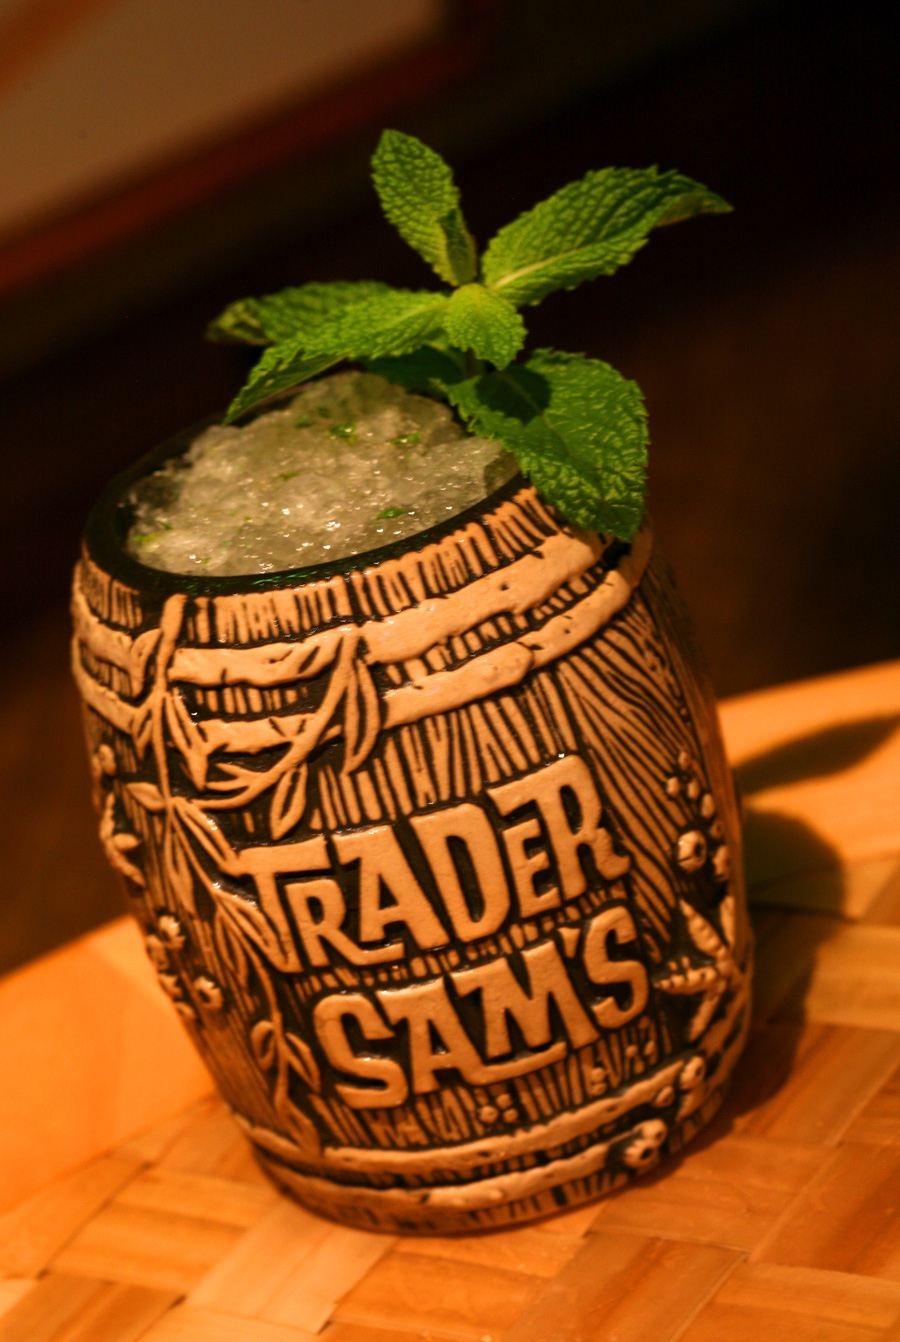 Trader Sam's Barrel Mug with Shipwreck on the Rocks, Available at the ...